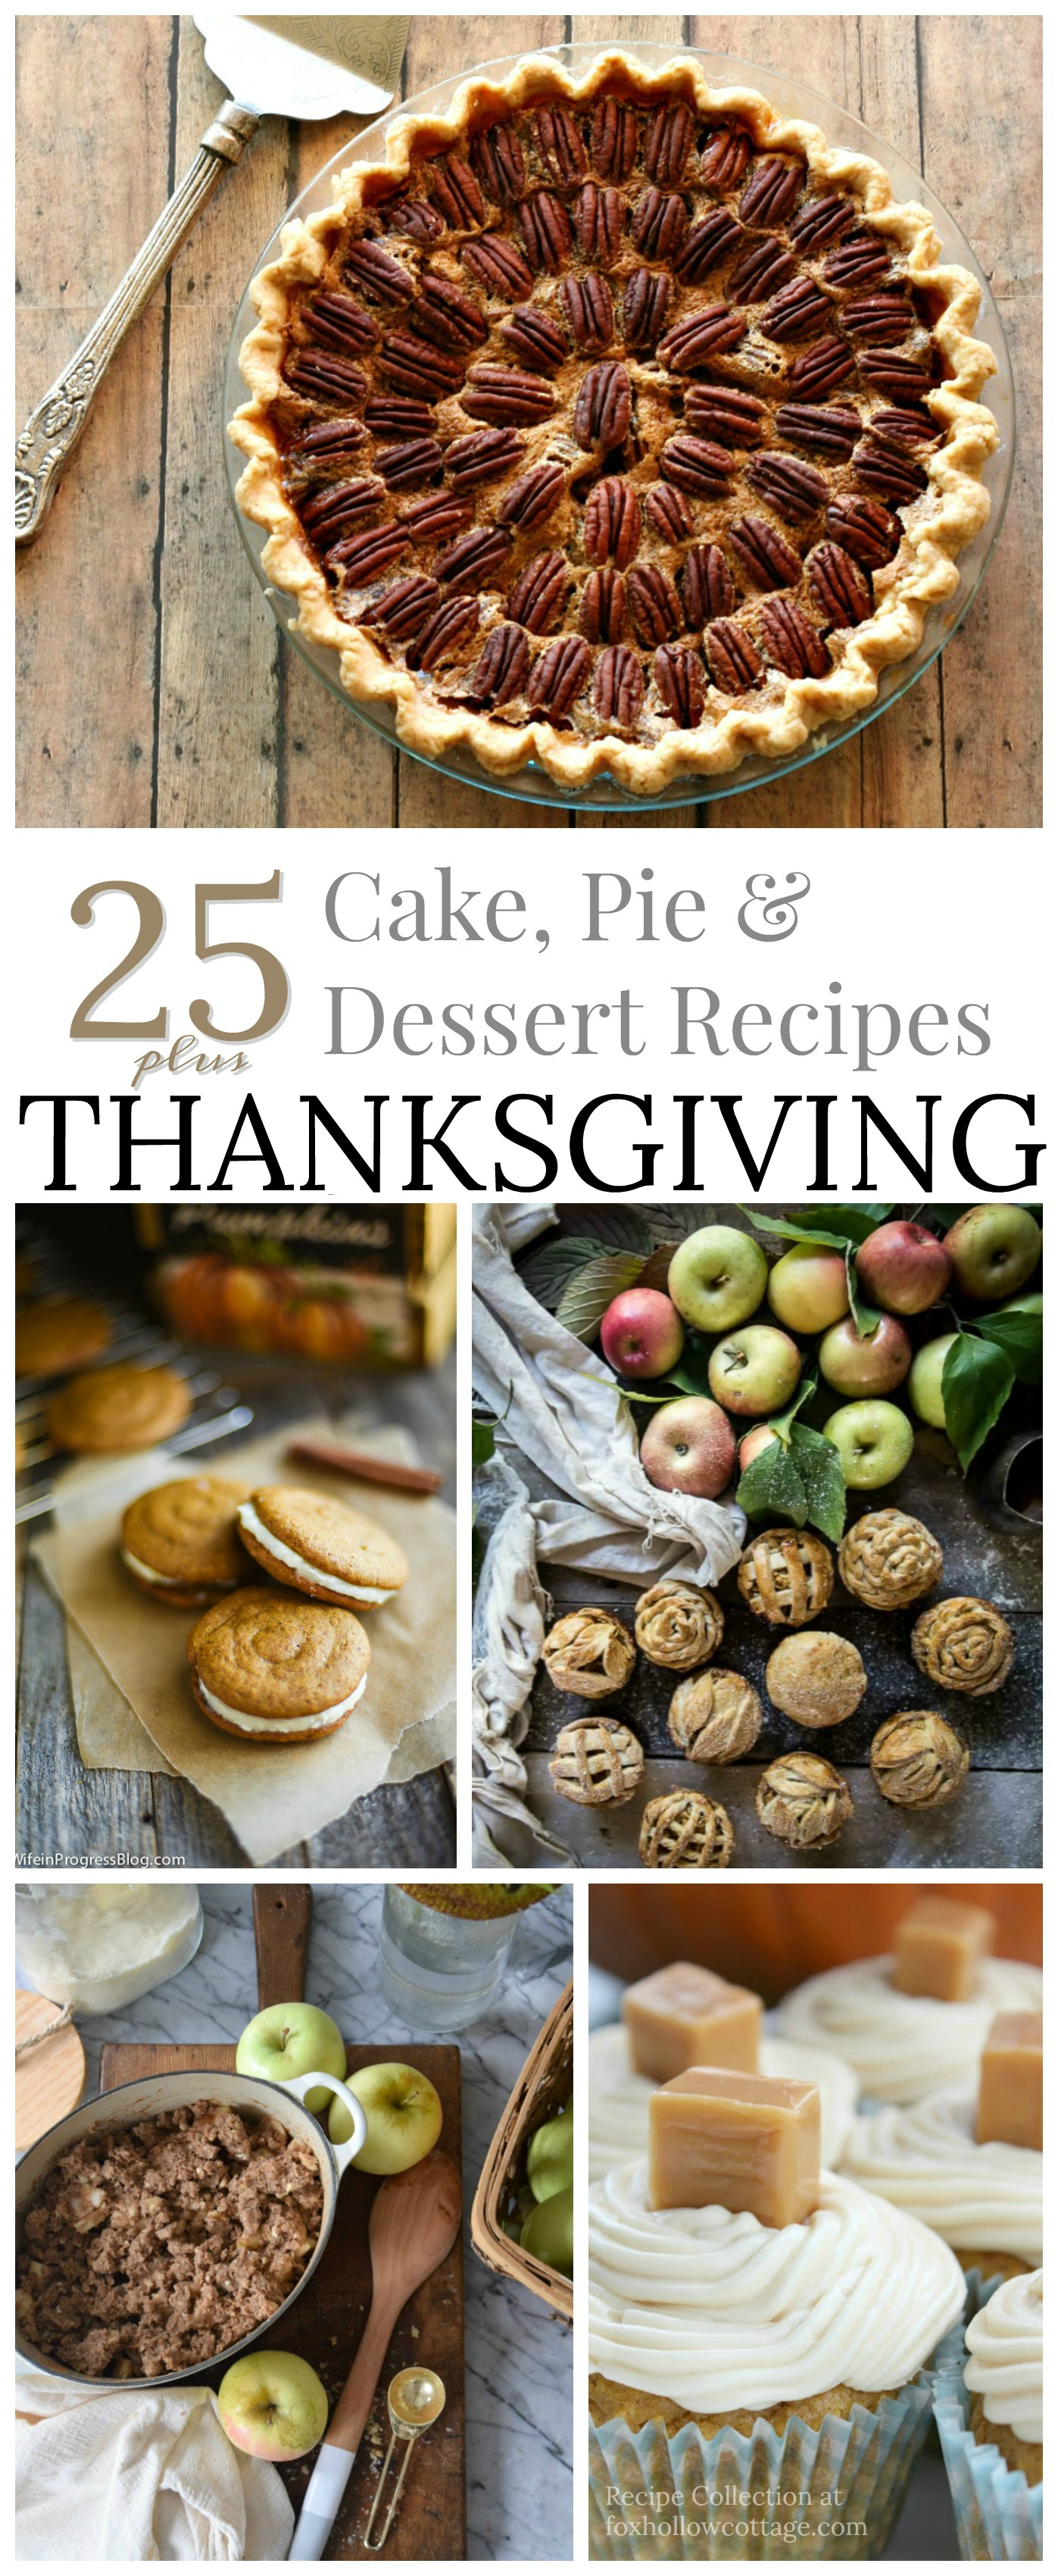 25 plus Cake Pie Dessert recipe ideas for your Thanksgiving Table - Full of Fall flavor, including cupcakes, biscotti and more... foxhollowcottage.com